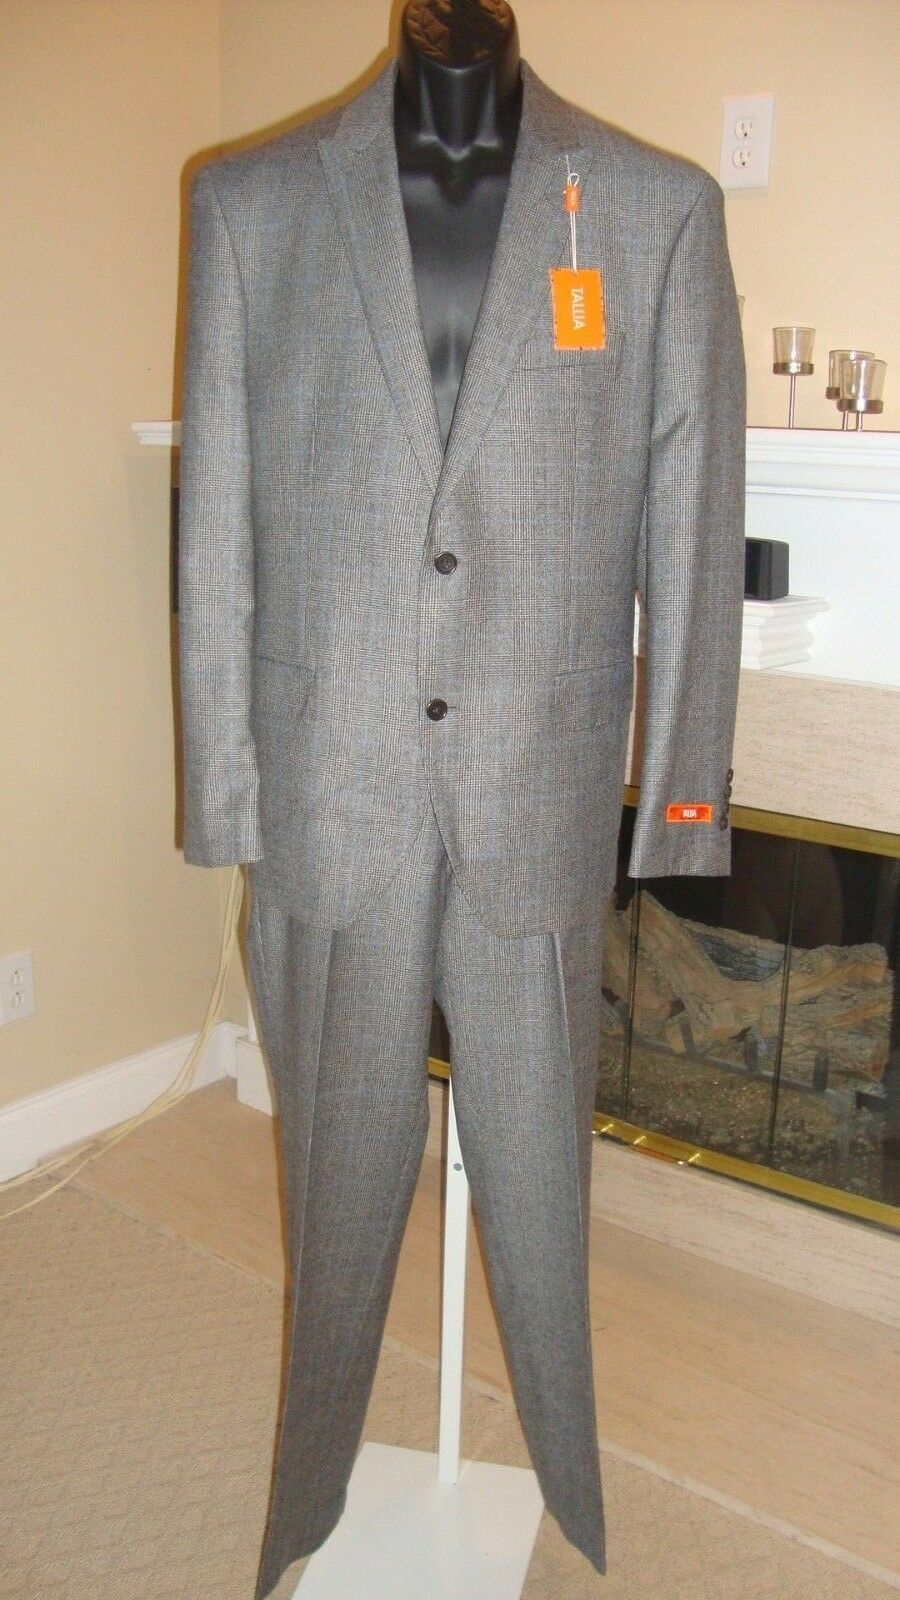 BEAUTIFUL NWT 750 TALLIA WOOL & CASHMERE Herren TWO-PIECE PANT SUIT